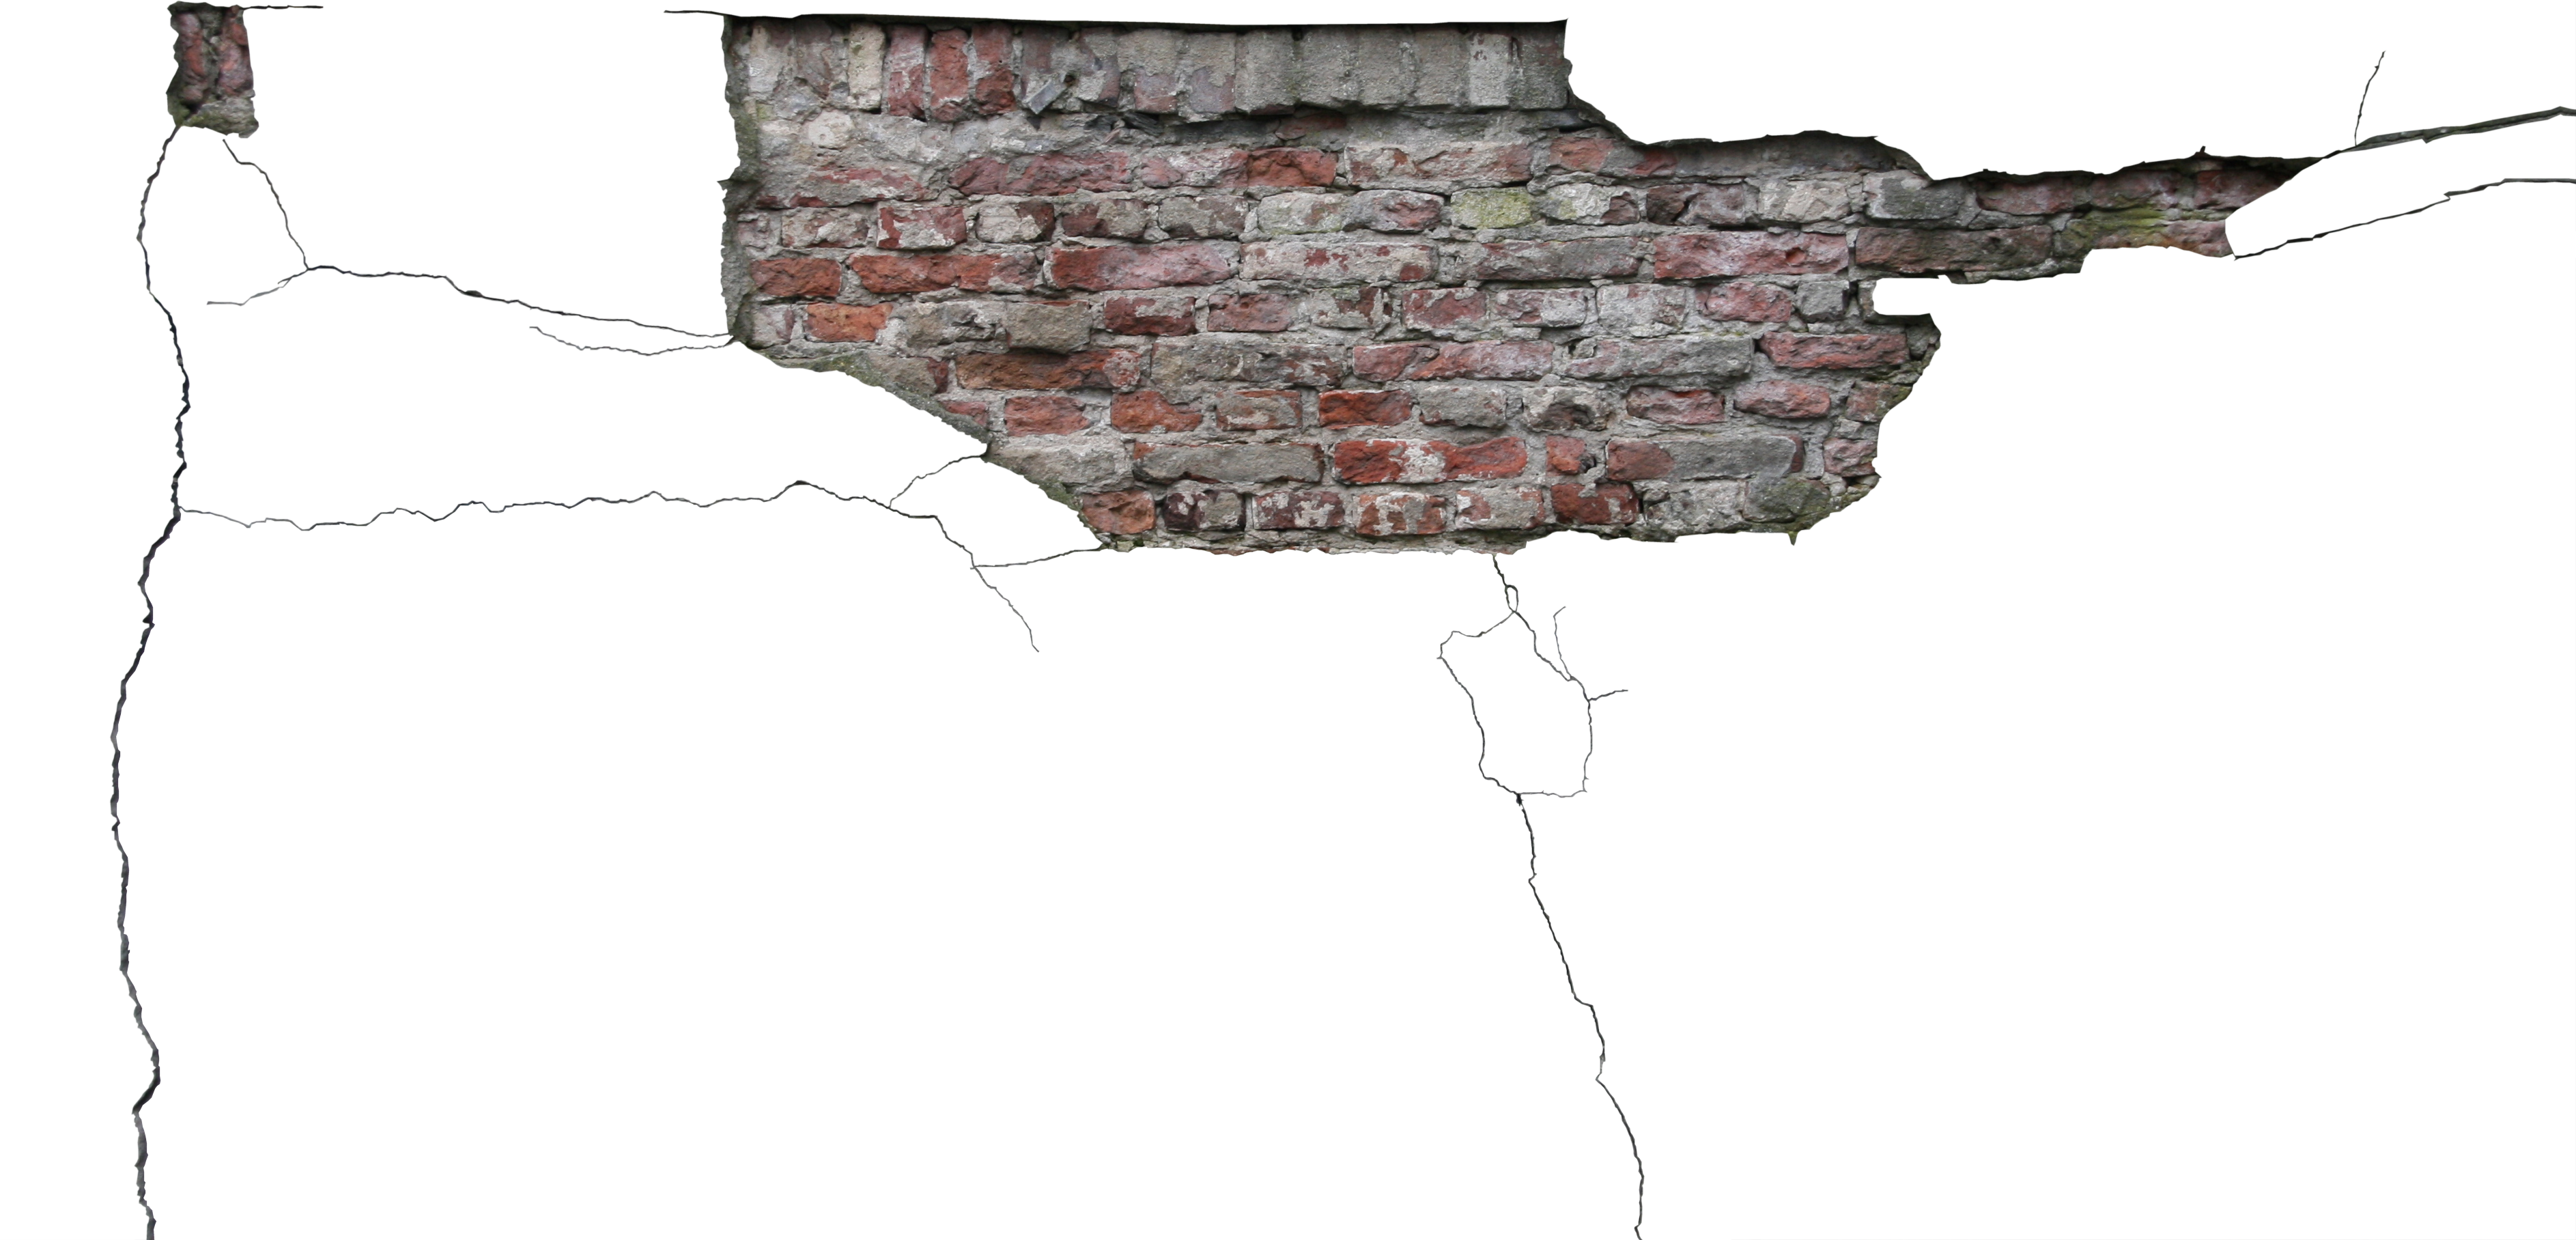 High Quality Cracked Stucco With Exposed Brick Decals - Stucco Decal Textures | High Quality ...